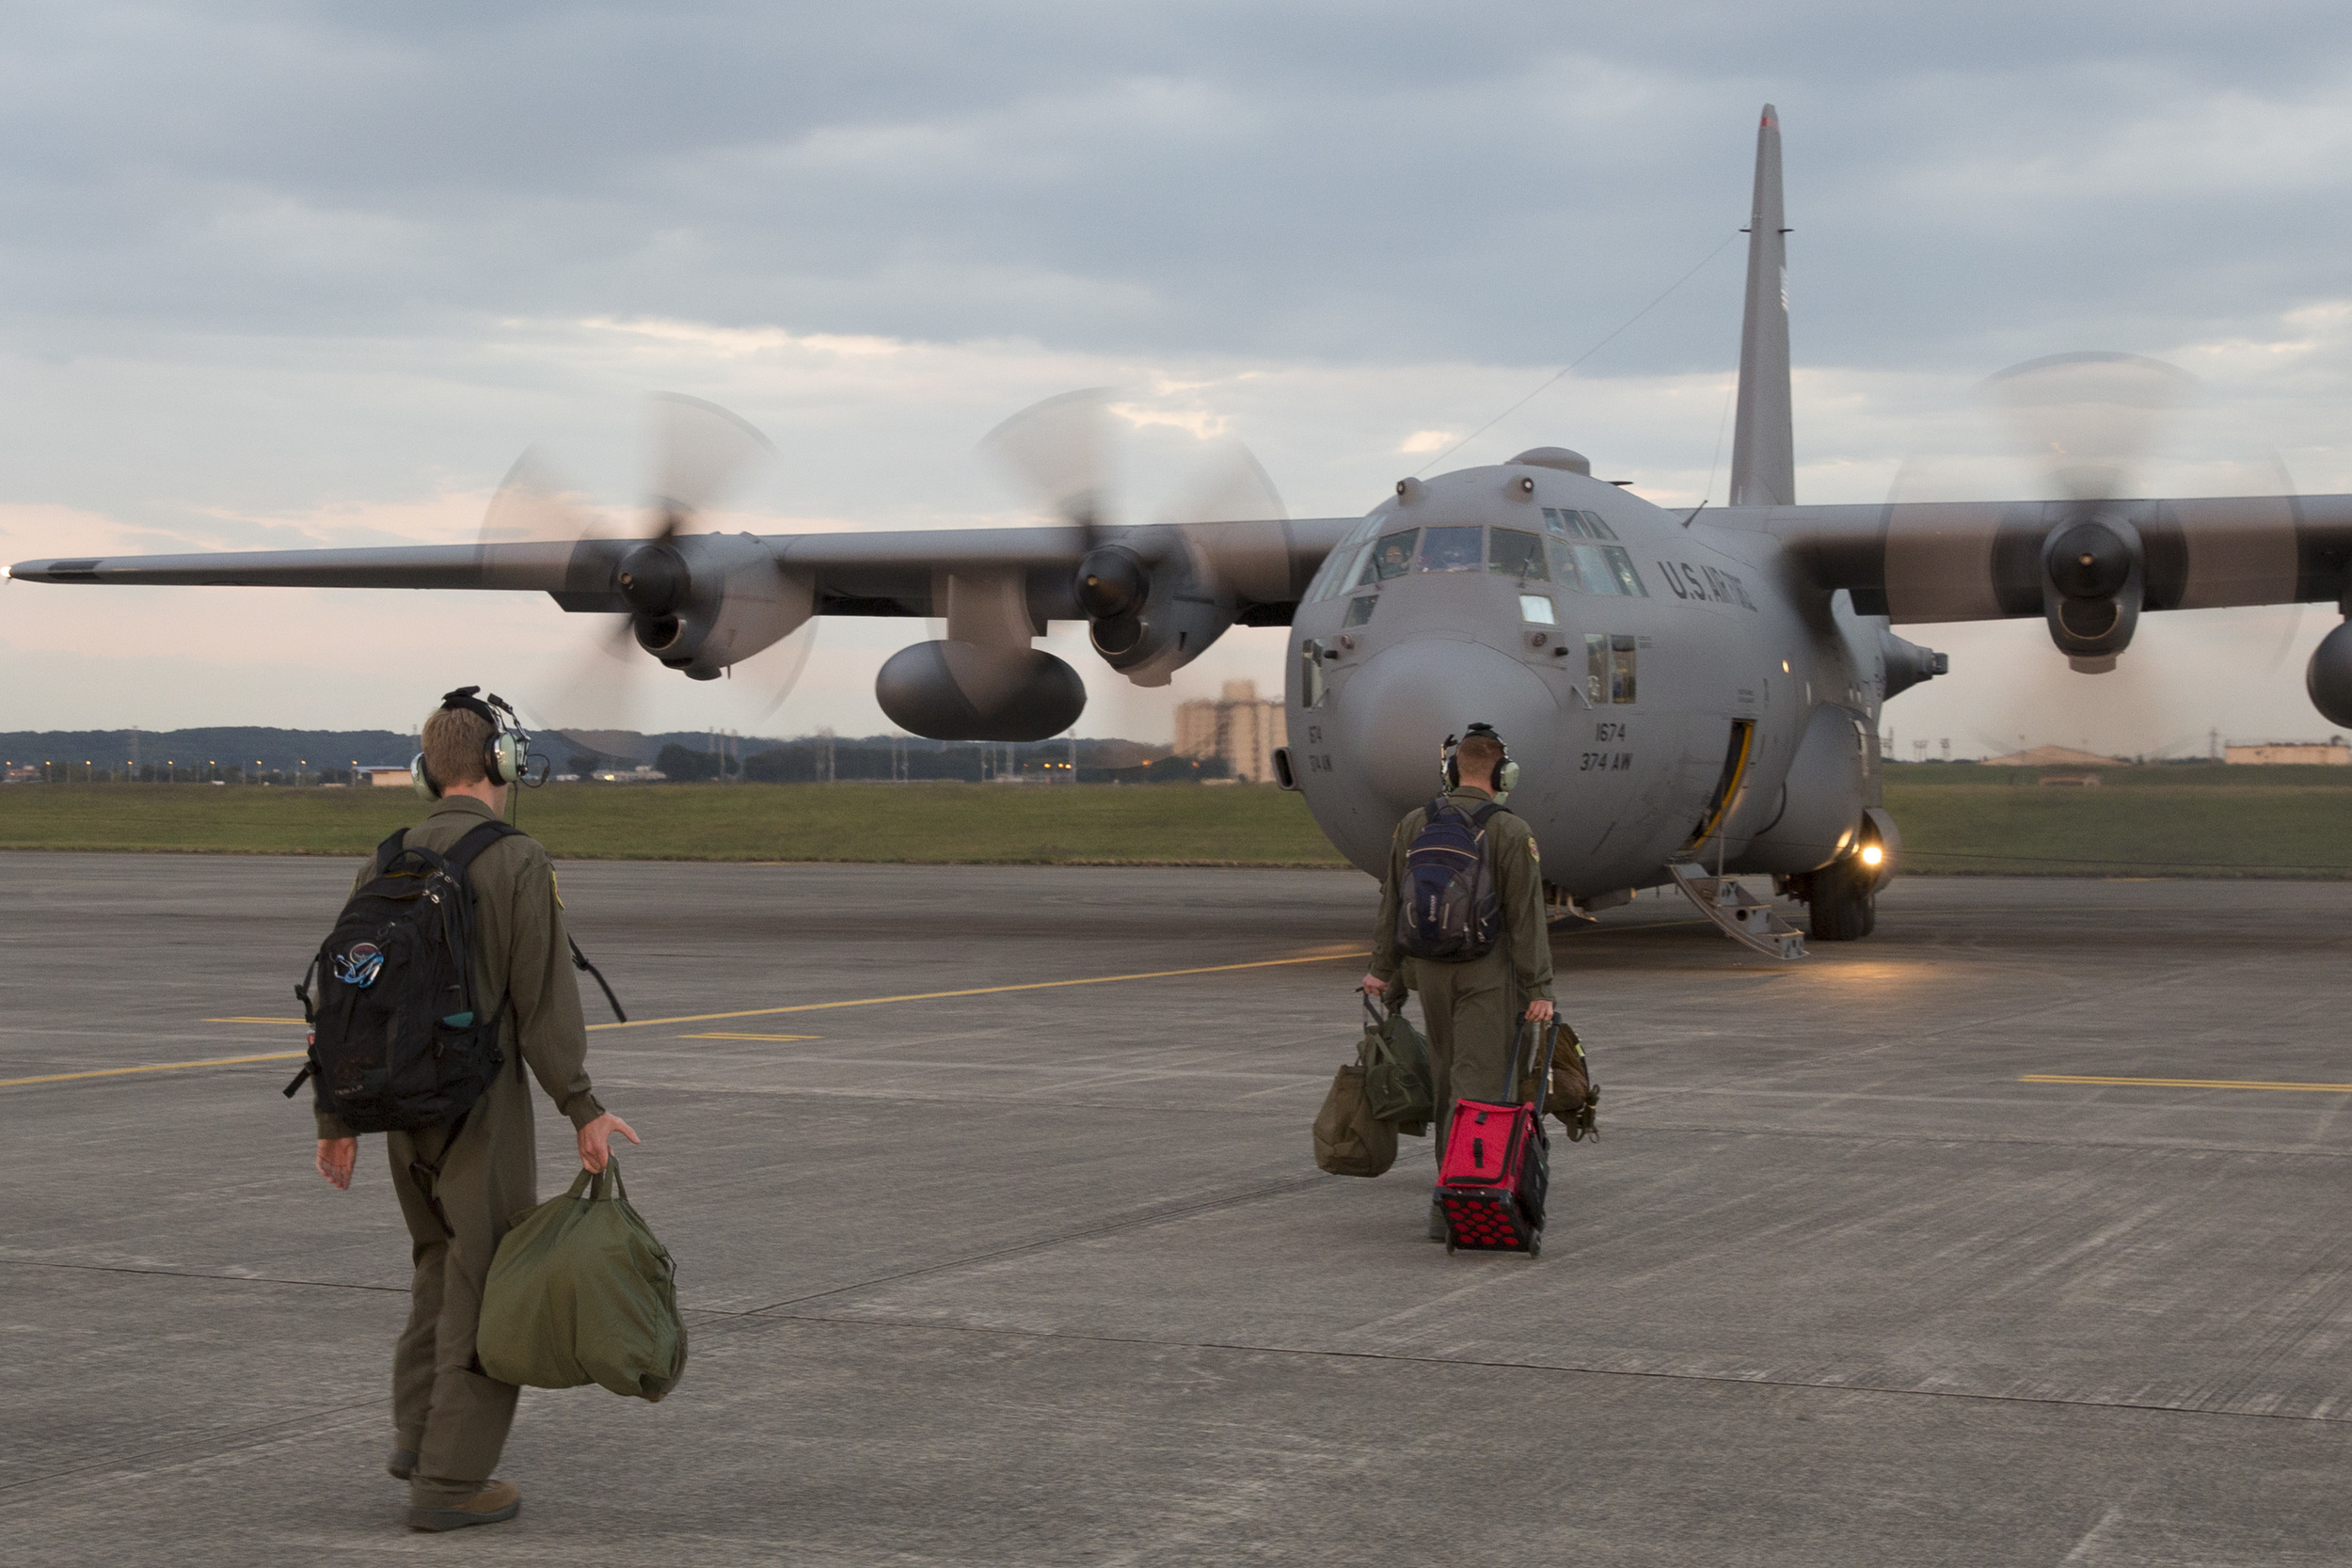 Aircrews walk to a C-130 Hercules at Yokota Air Base, Japan, Oct. 14, 2015, during a training mission. The training mission ensured that the airlifters are ready to respond to a variety of contingencies throughout the Indo-Asia Pacific region. (U.S. Air Force photo by Osakabe Yasuo/Released)